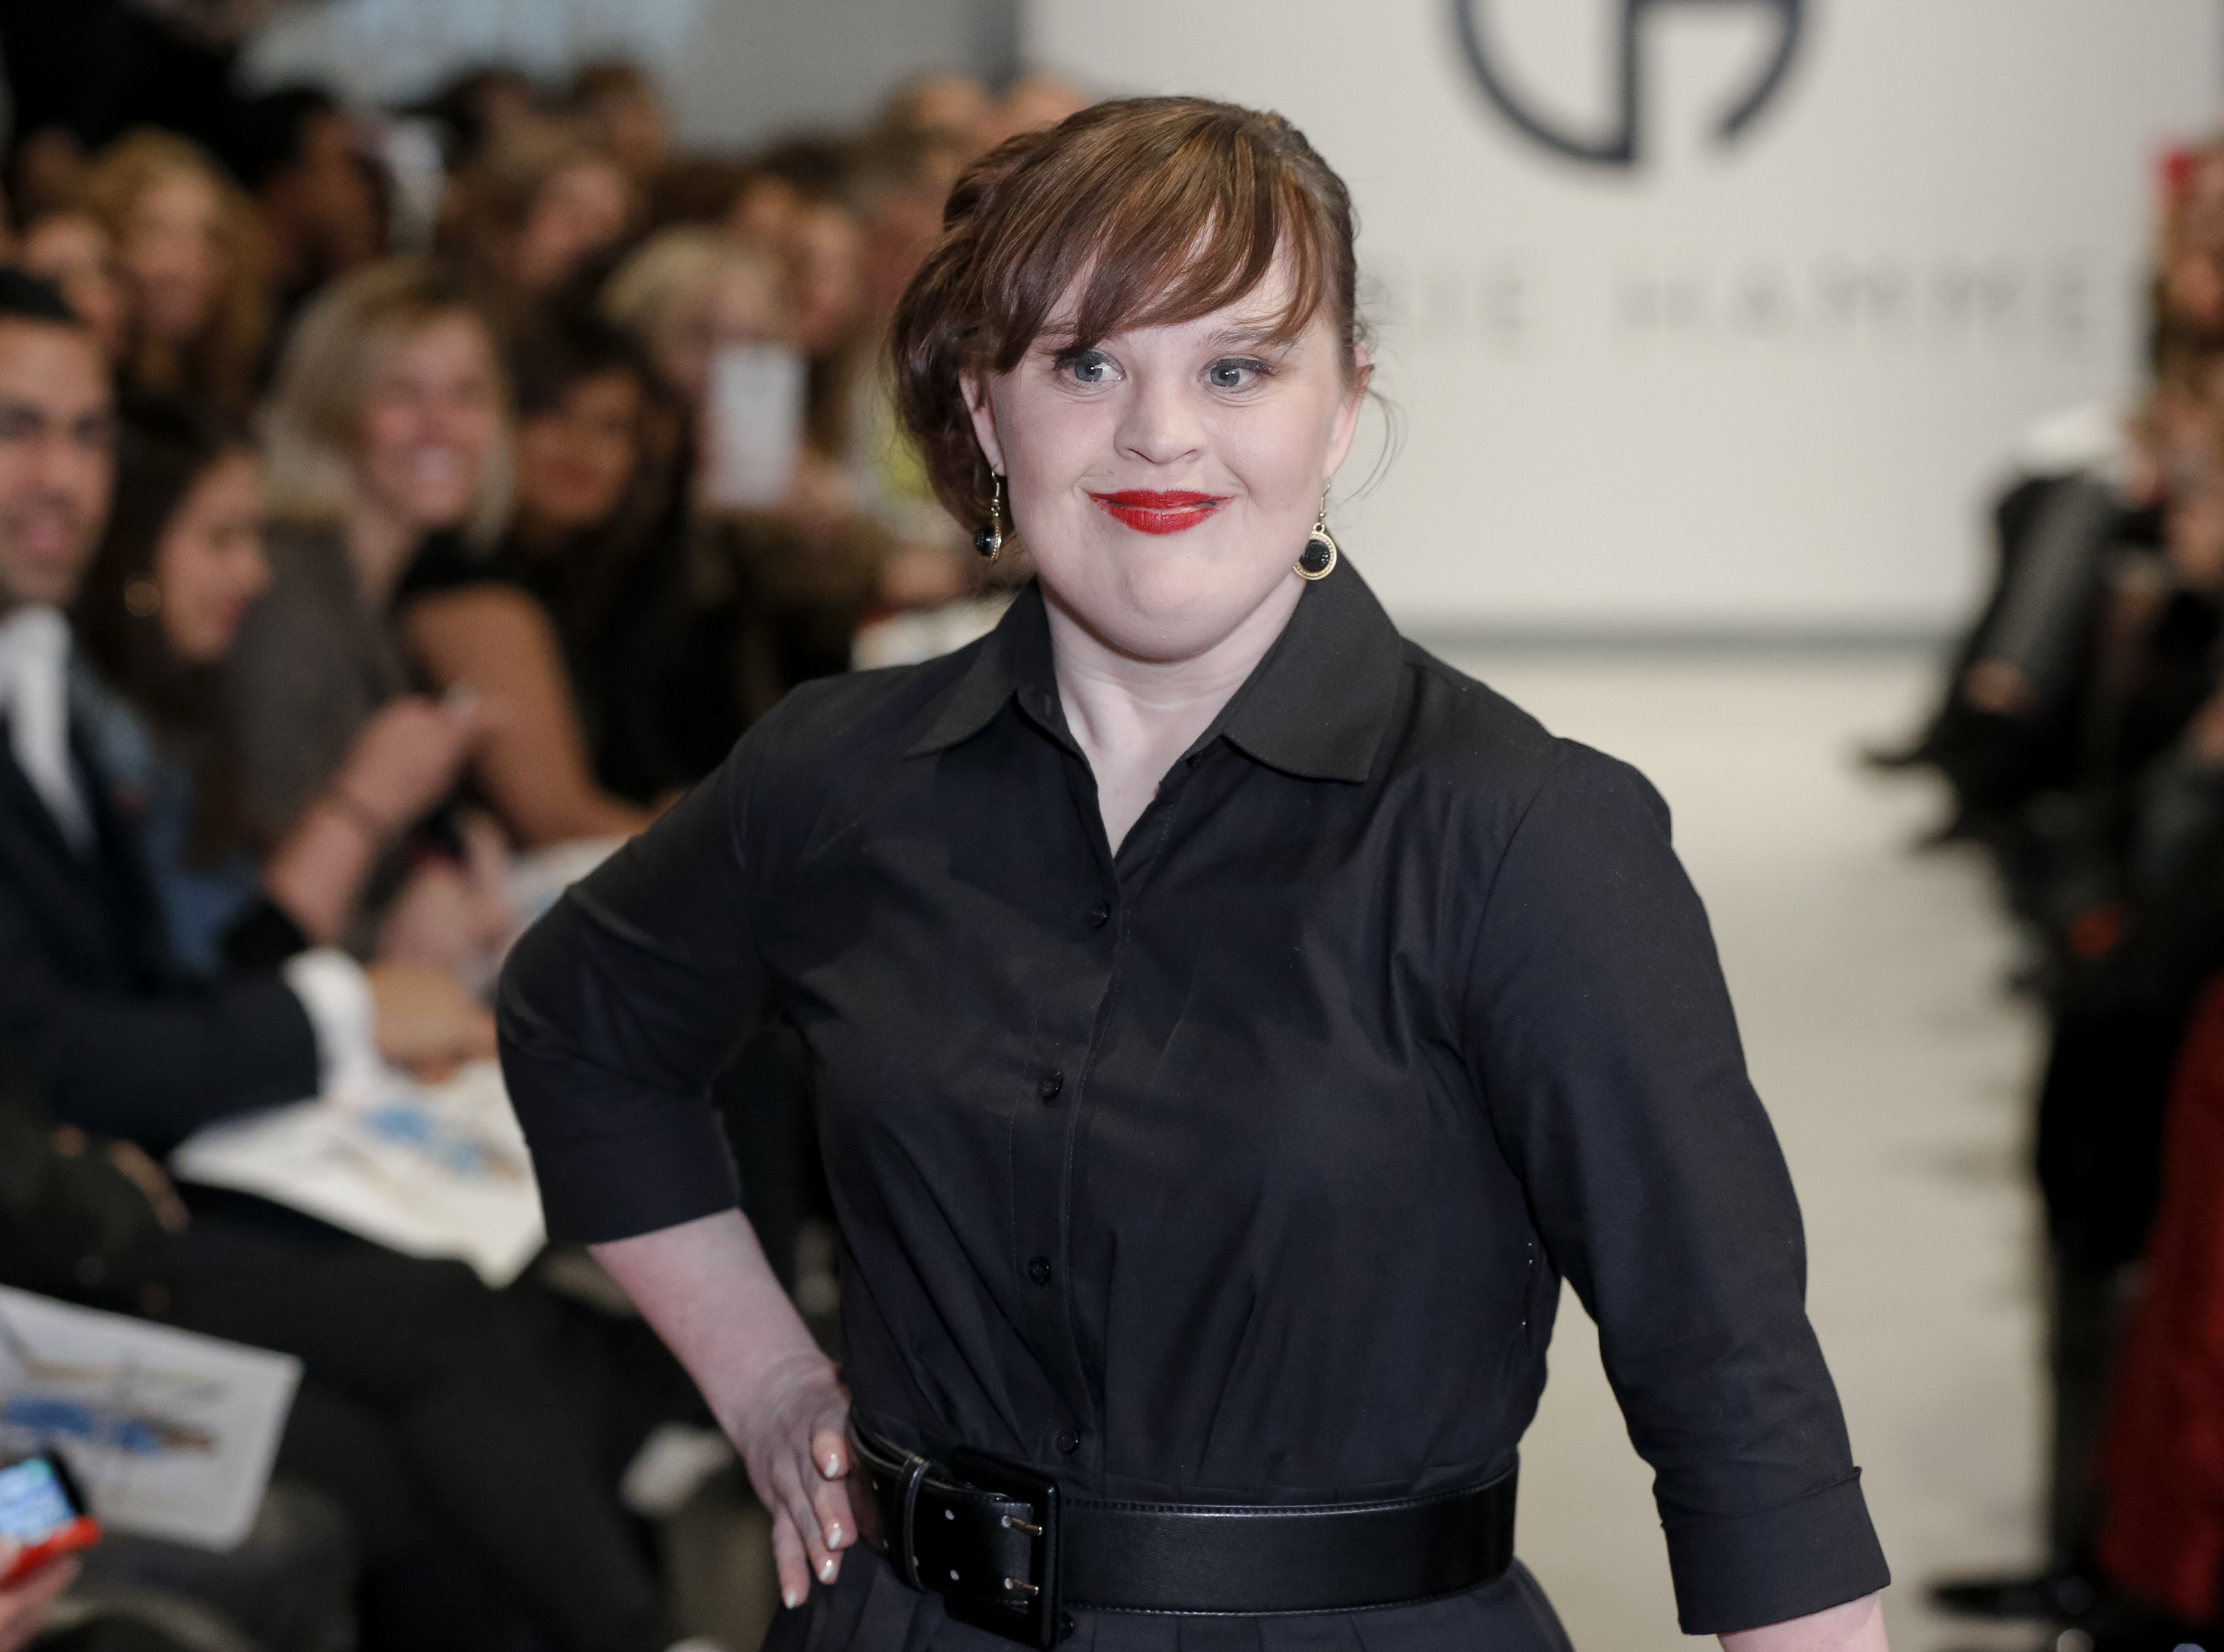 Jamie Brewer, la prima modella Down sfila alla New York Fashion Week (FOTO)